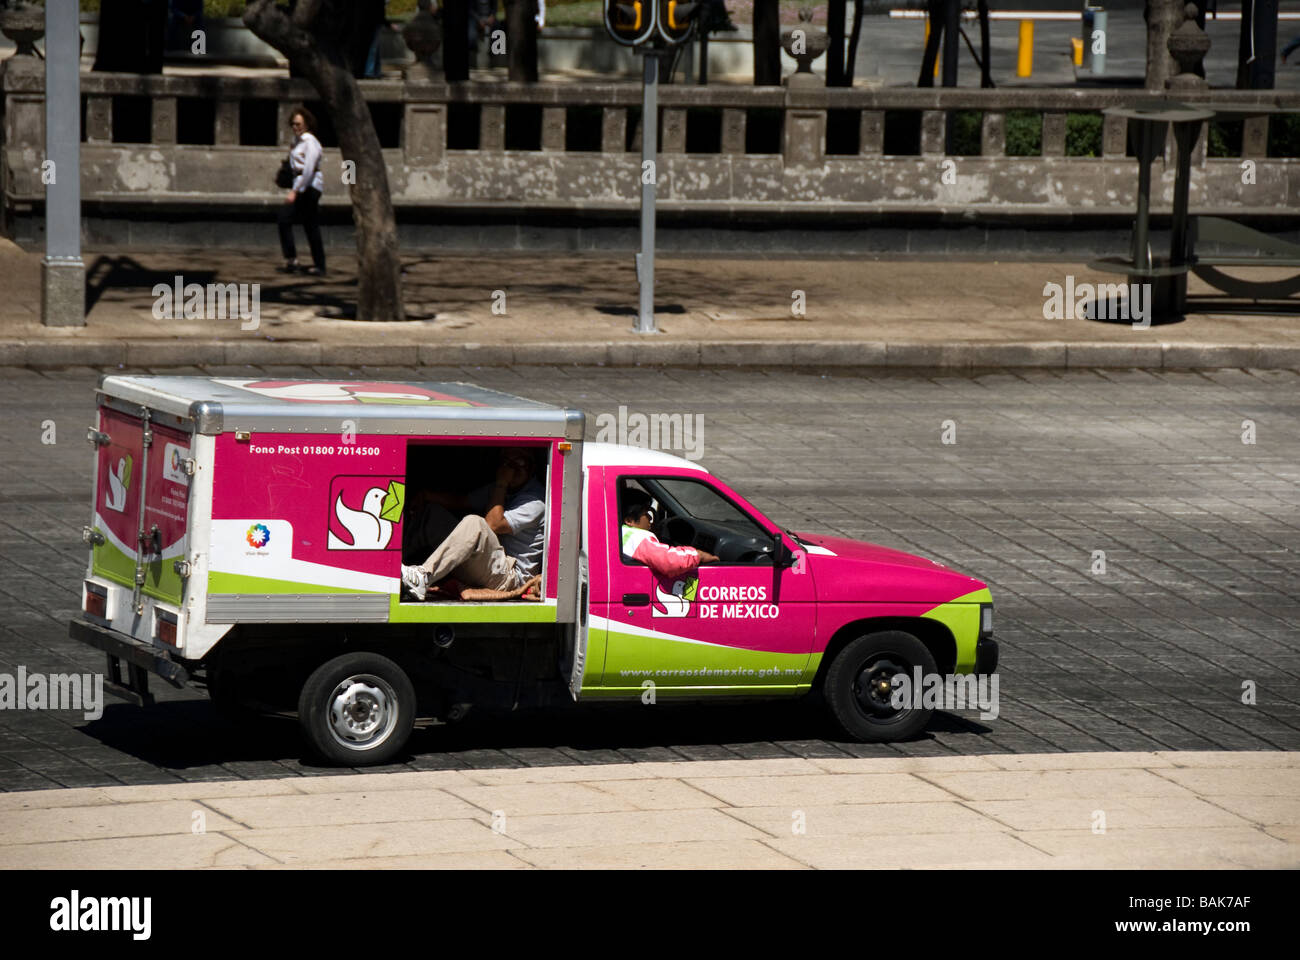 Postoffice car, mail delivery, Mexico city, Mexico - Stock Image